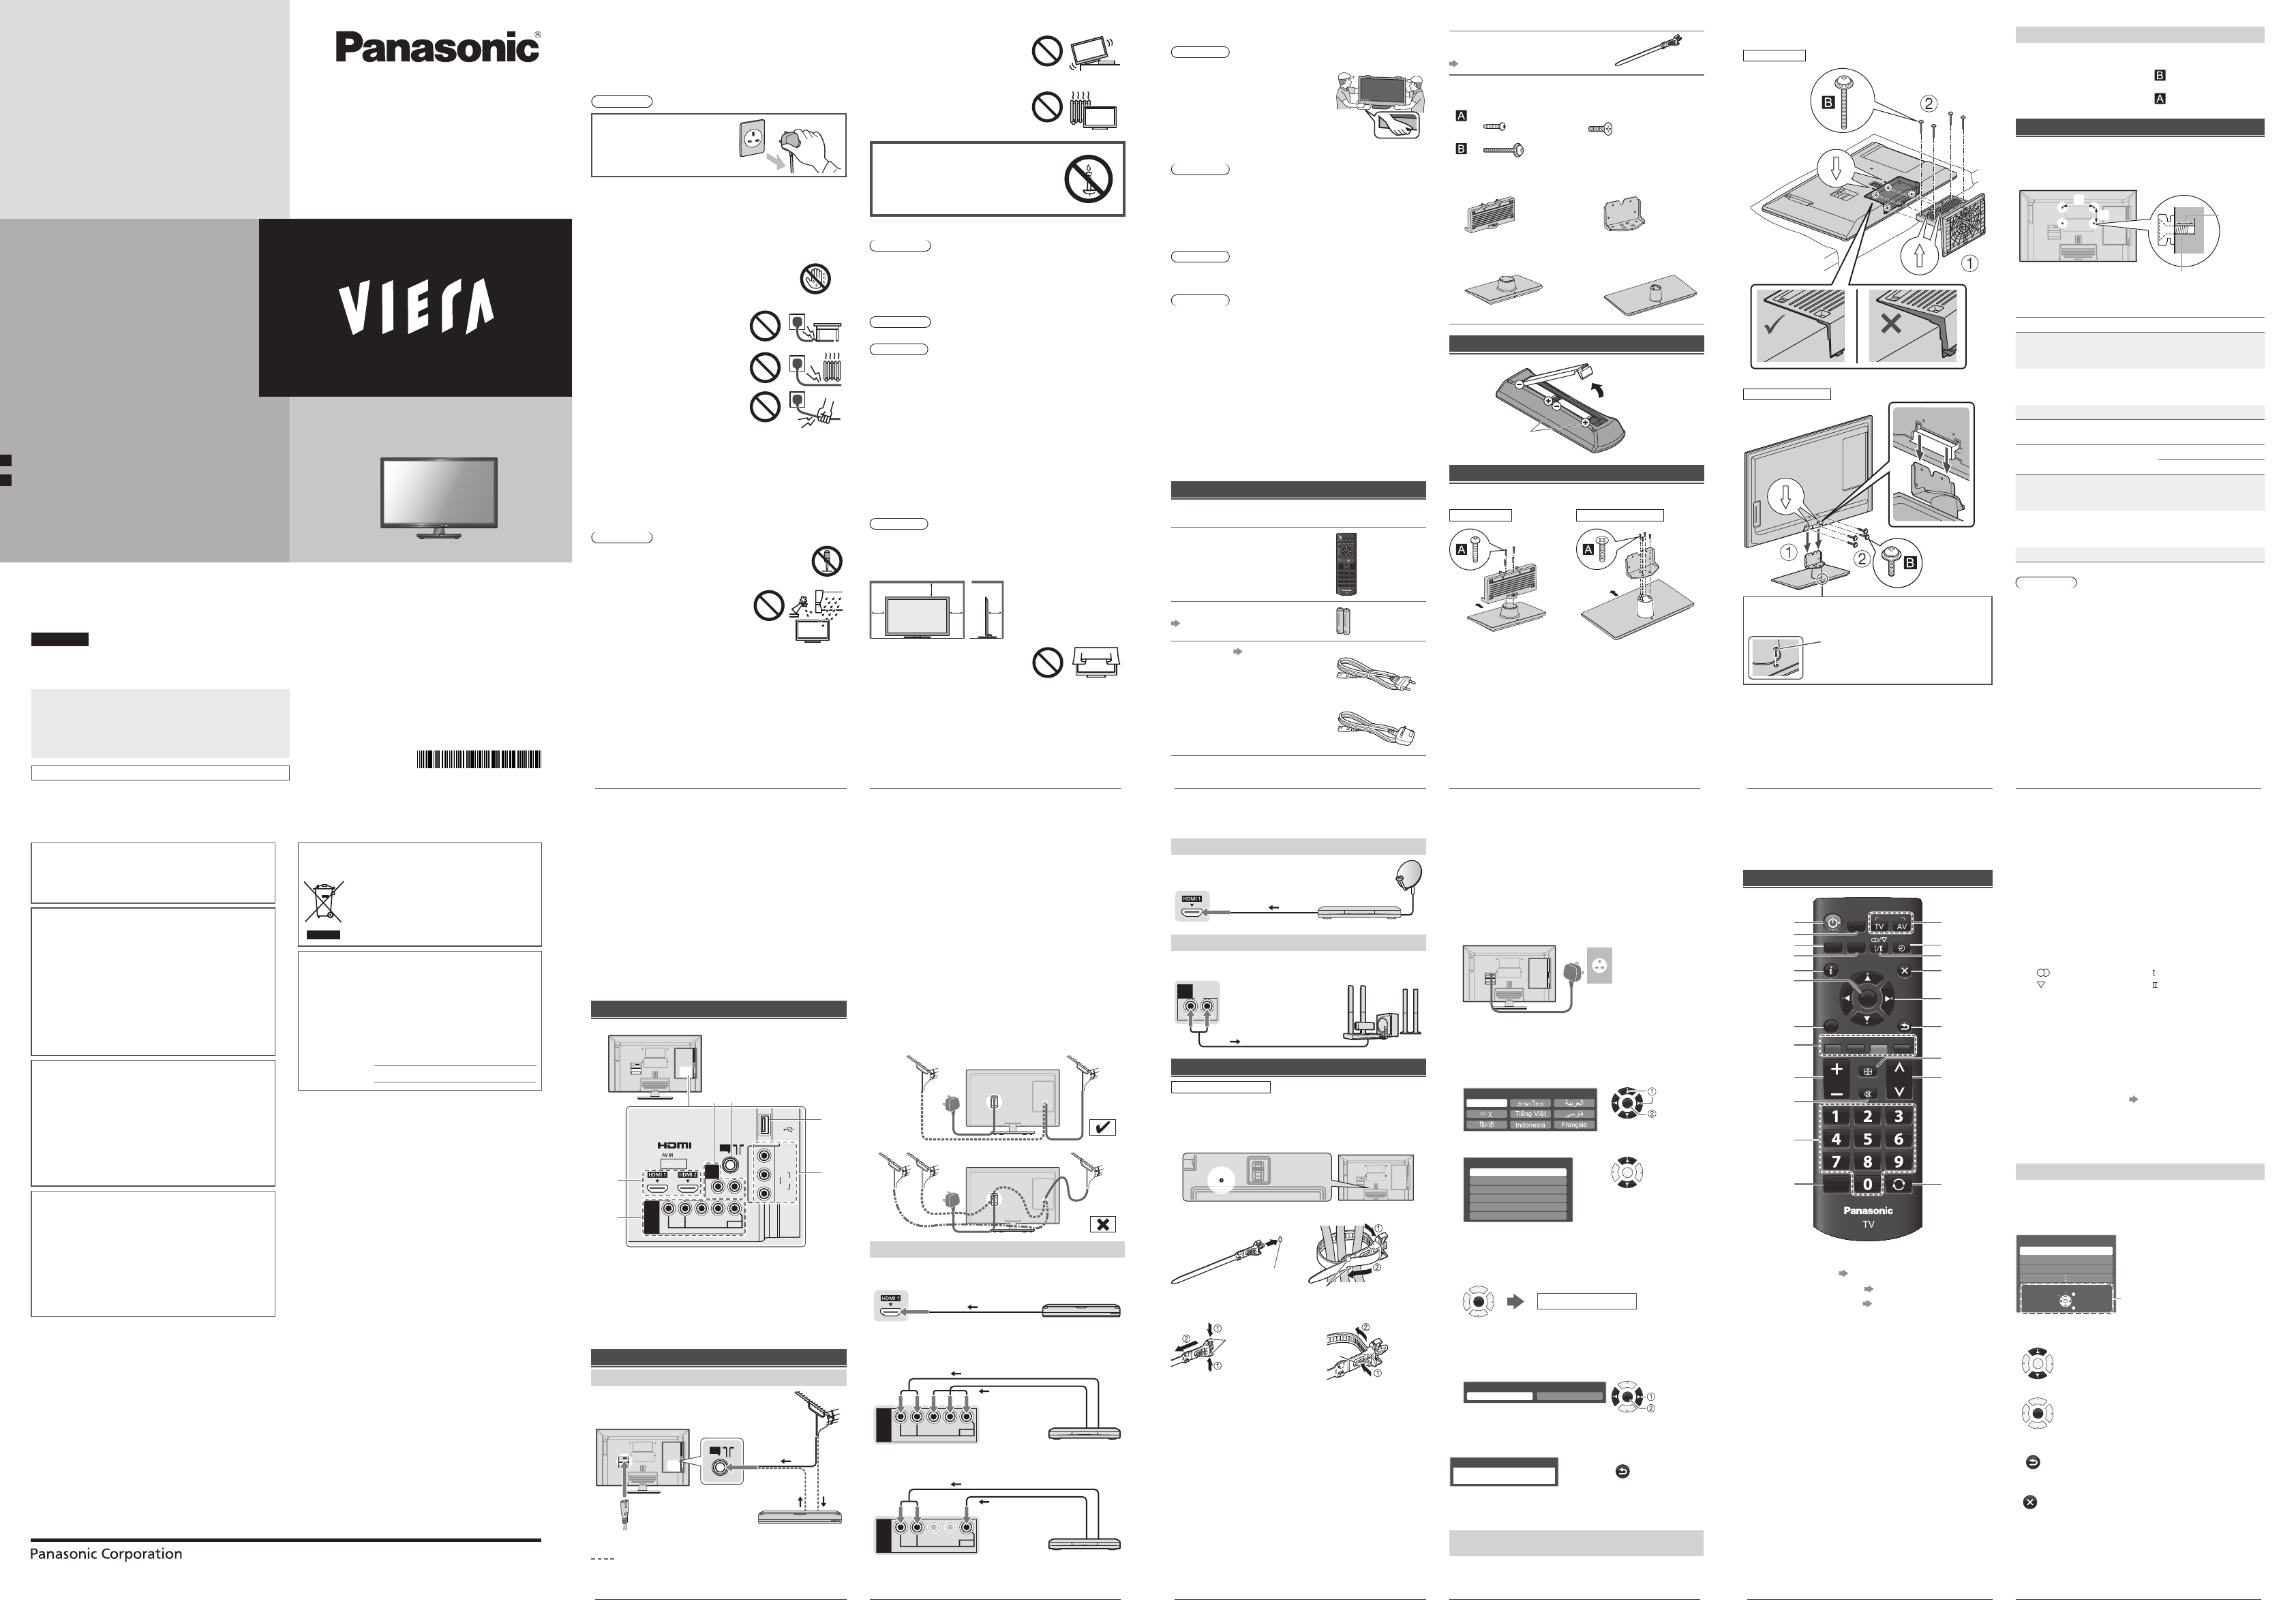 prism tv wiring diagram prism electric wiring diagram and panasonic car satellite tv system thl39b69k user guide prism tv wiring diagram panasonic thl39b69k car